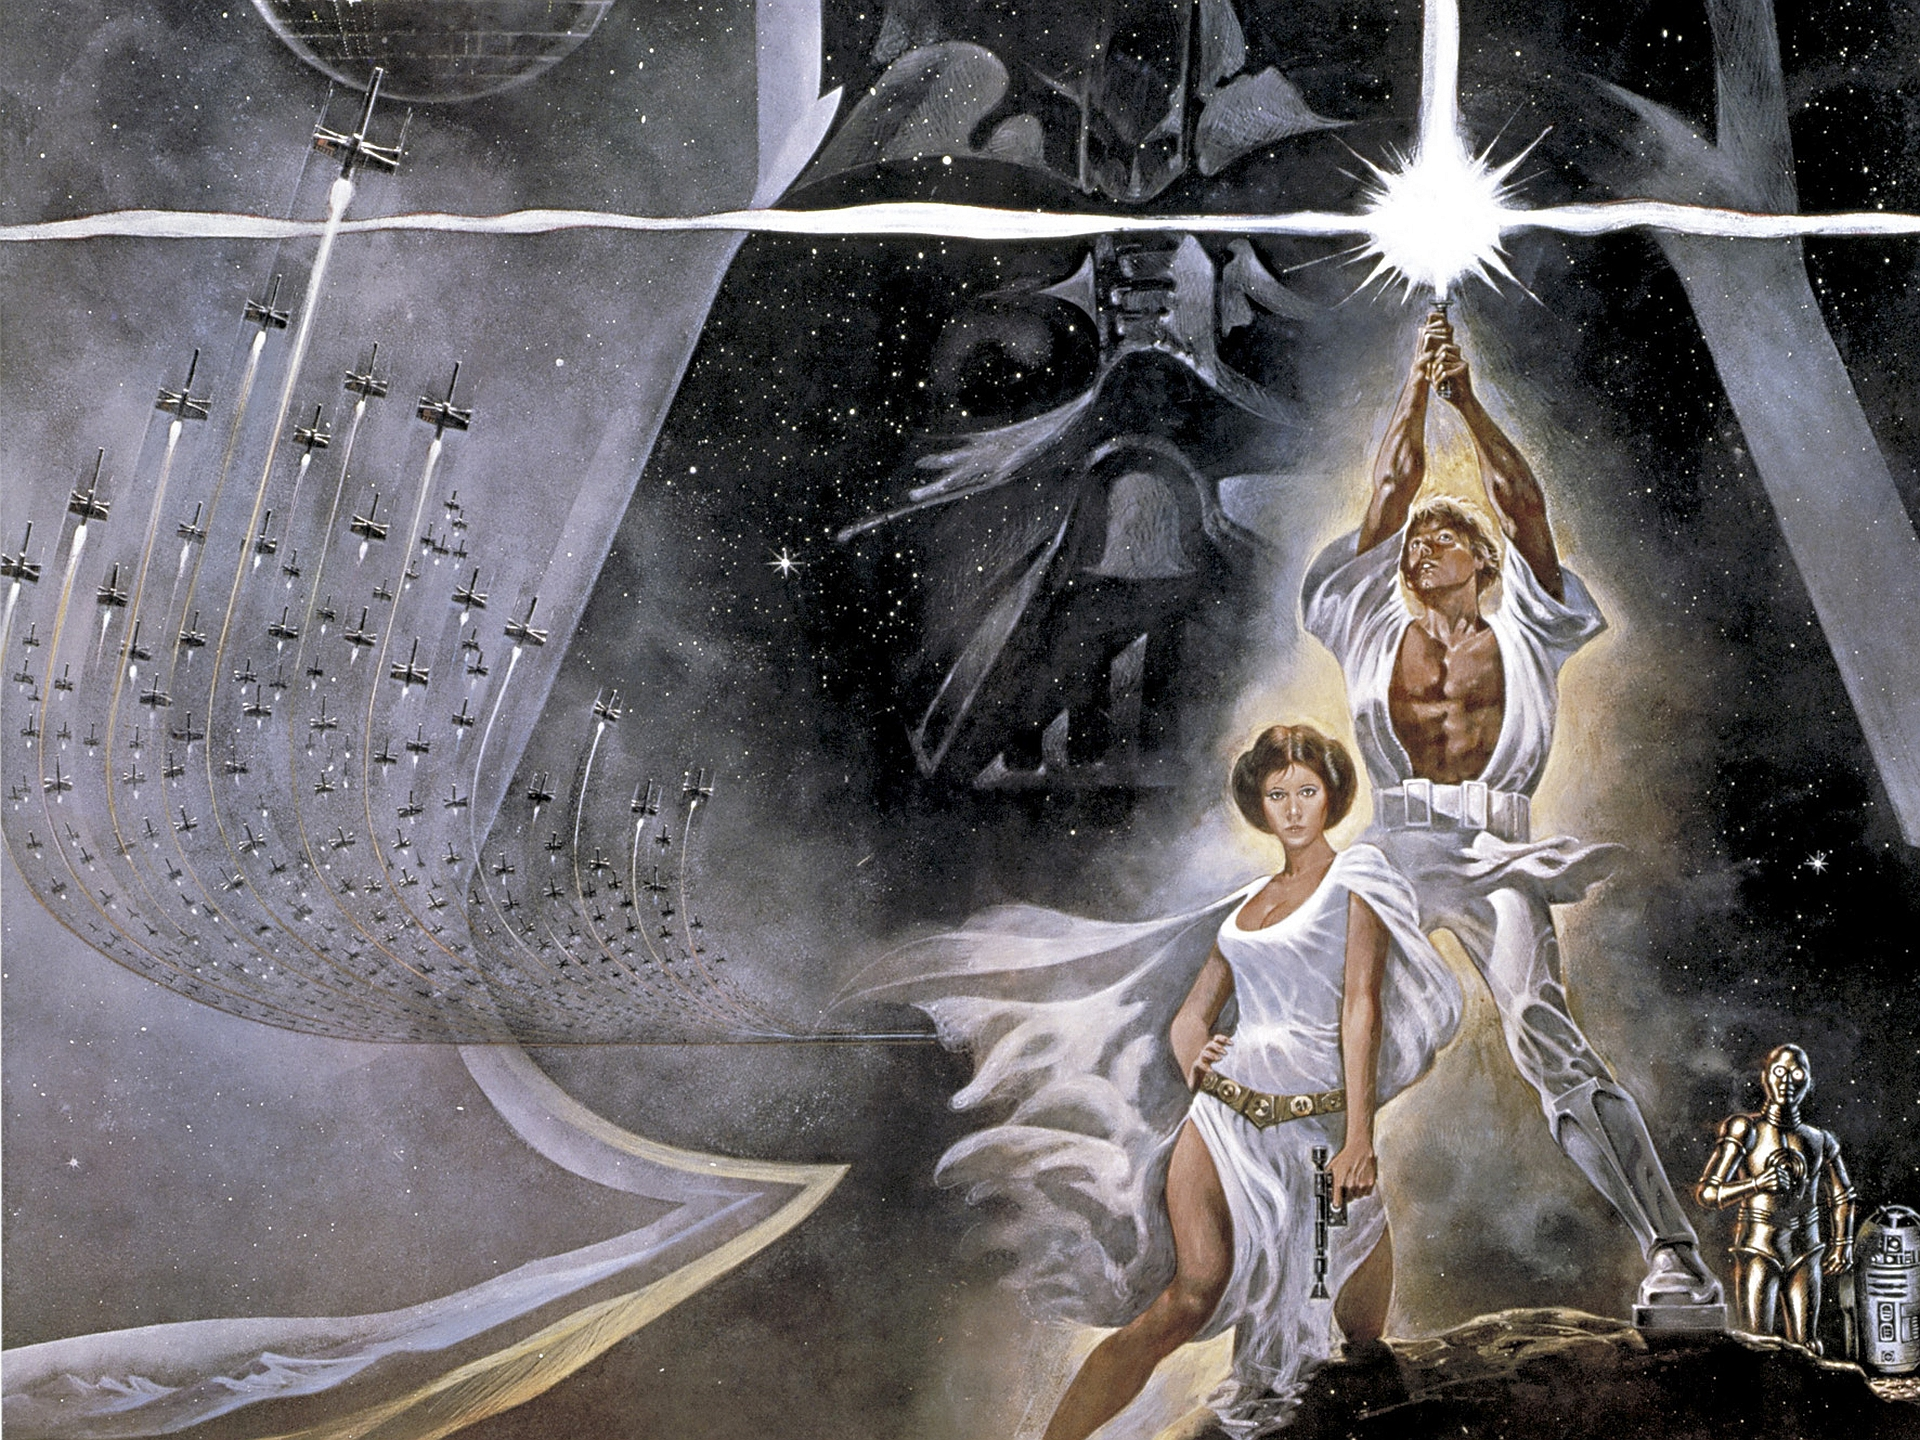 Star wars episode iv a new hope wallpapers pictures images - Star wars wallpaper ...